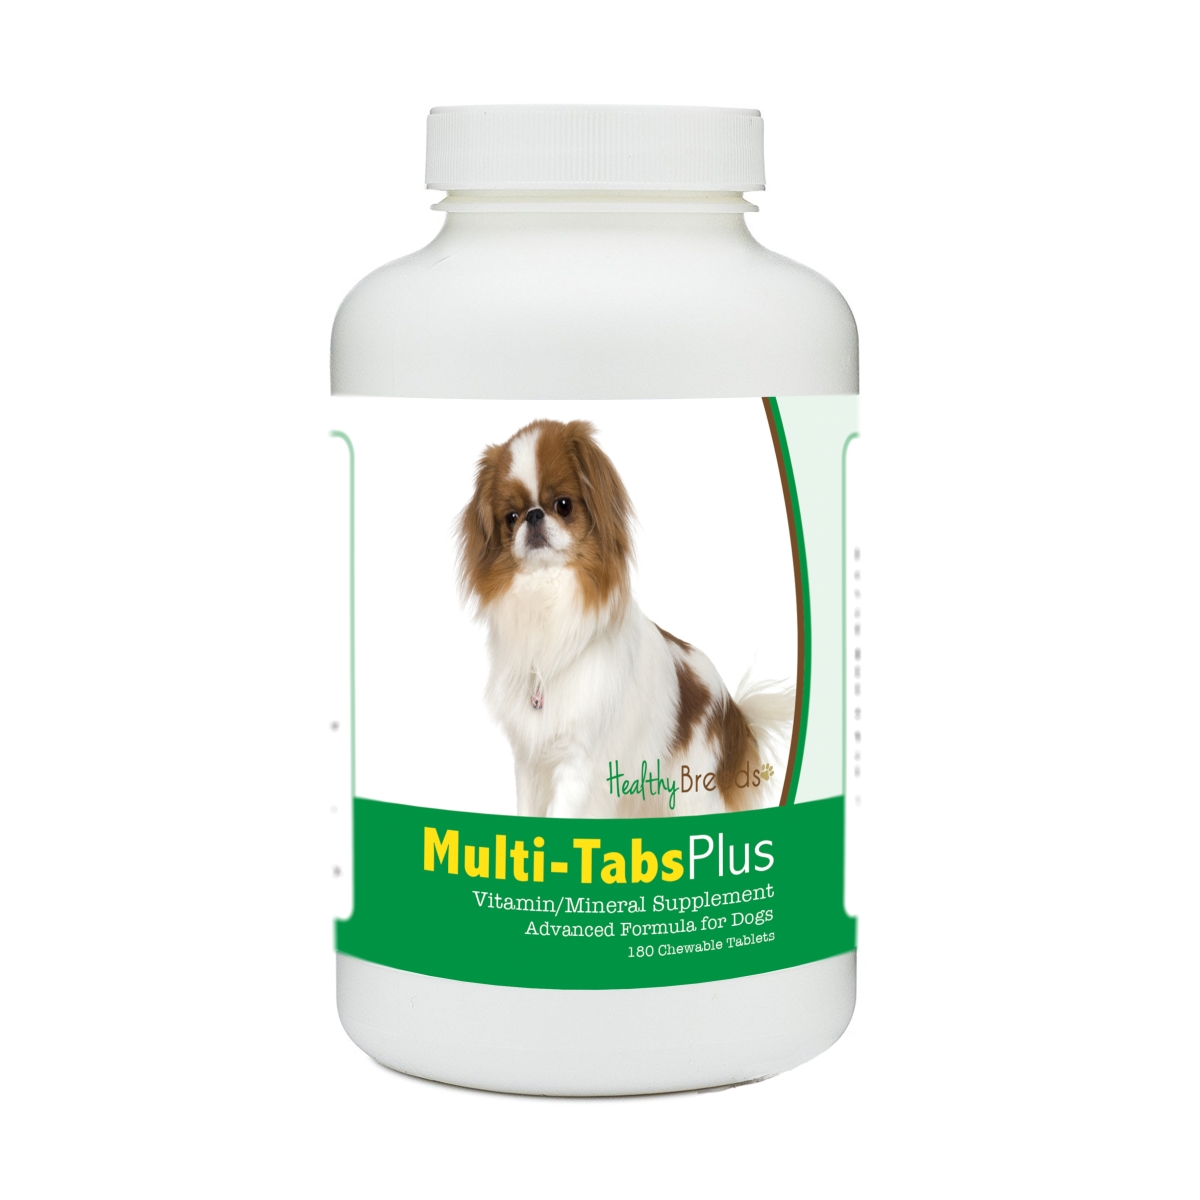 Healthy Breeds 840235140351 Japanese Chin Multi-Tabs Plus Chewable Tablets - 180 Count